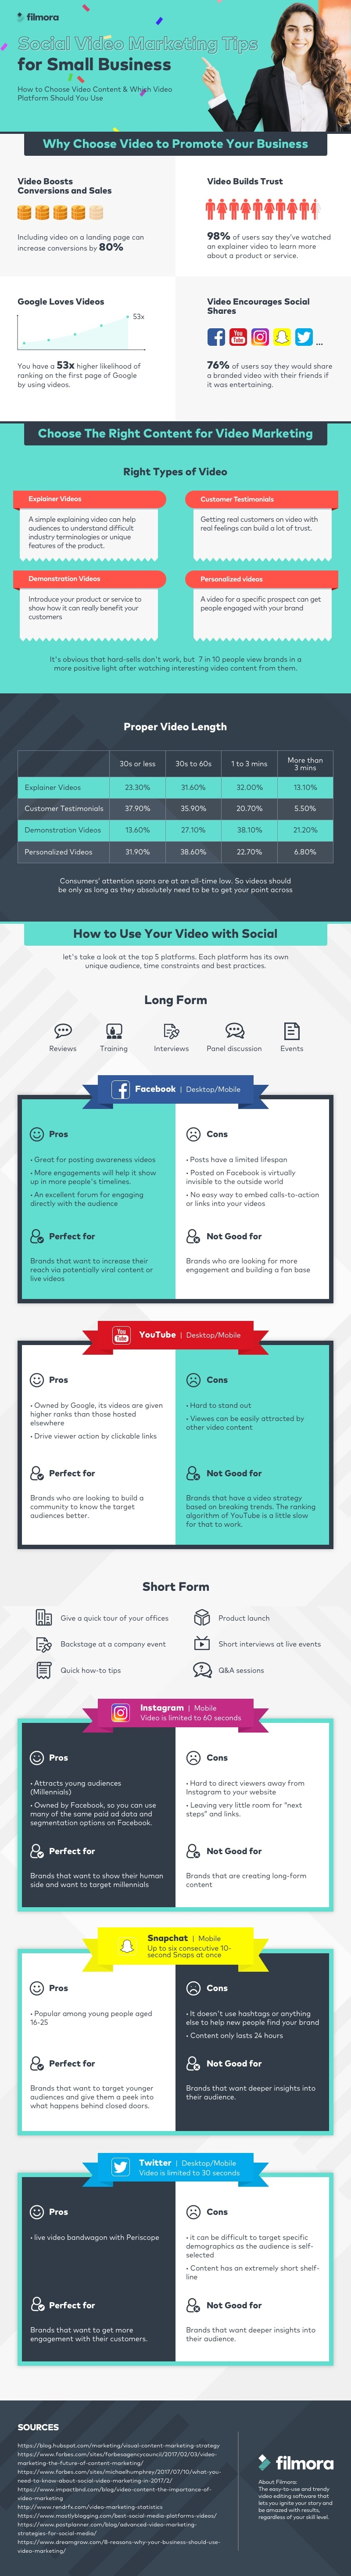 Social Video Marketing Tips for Small Business